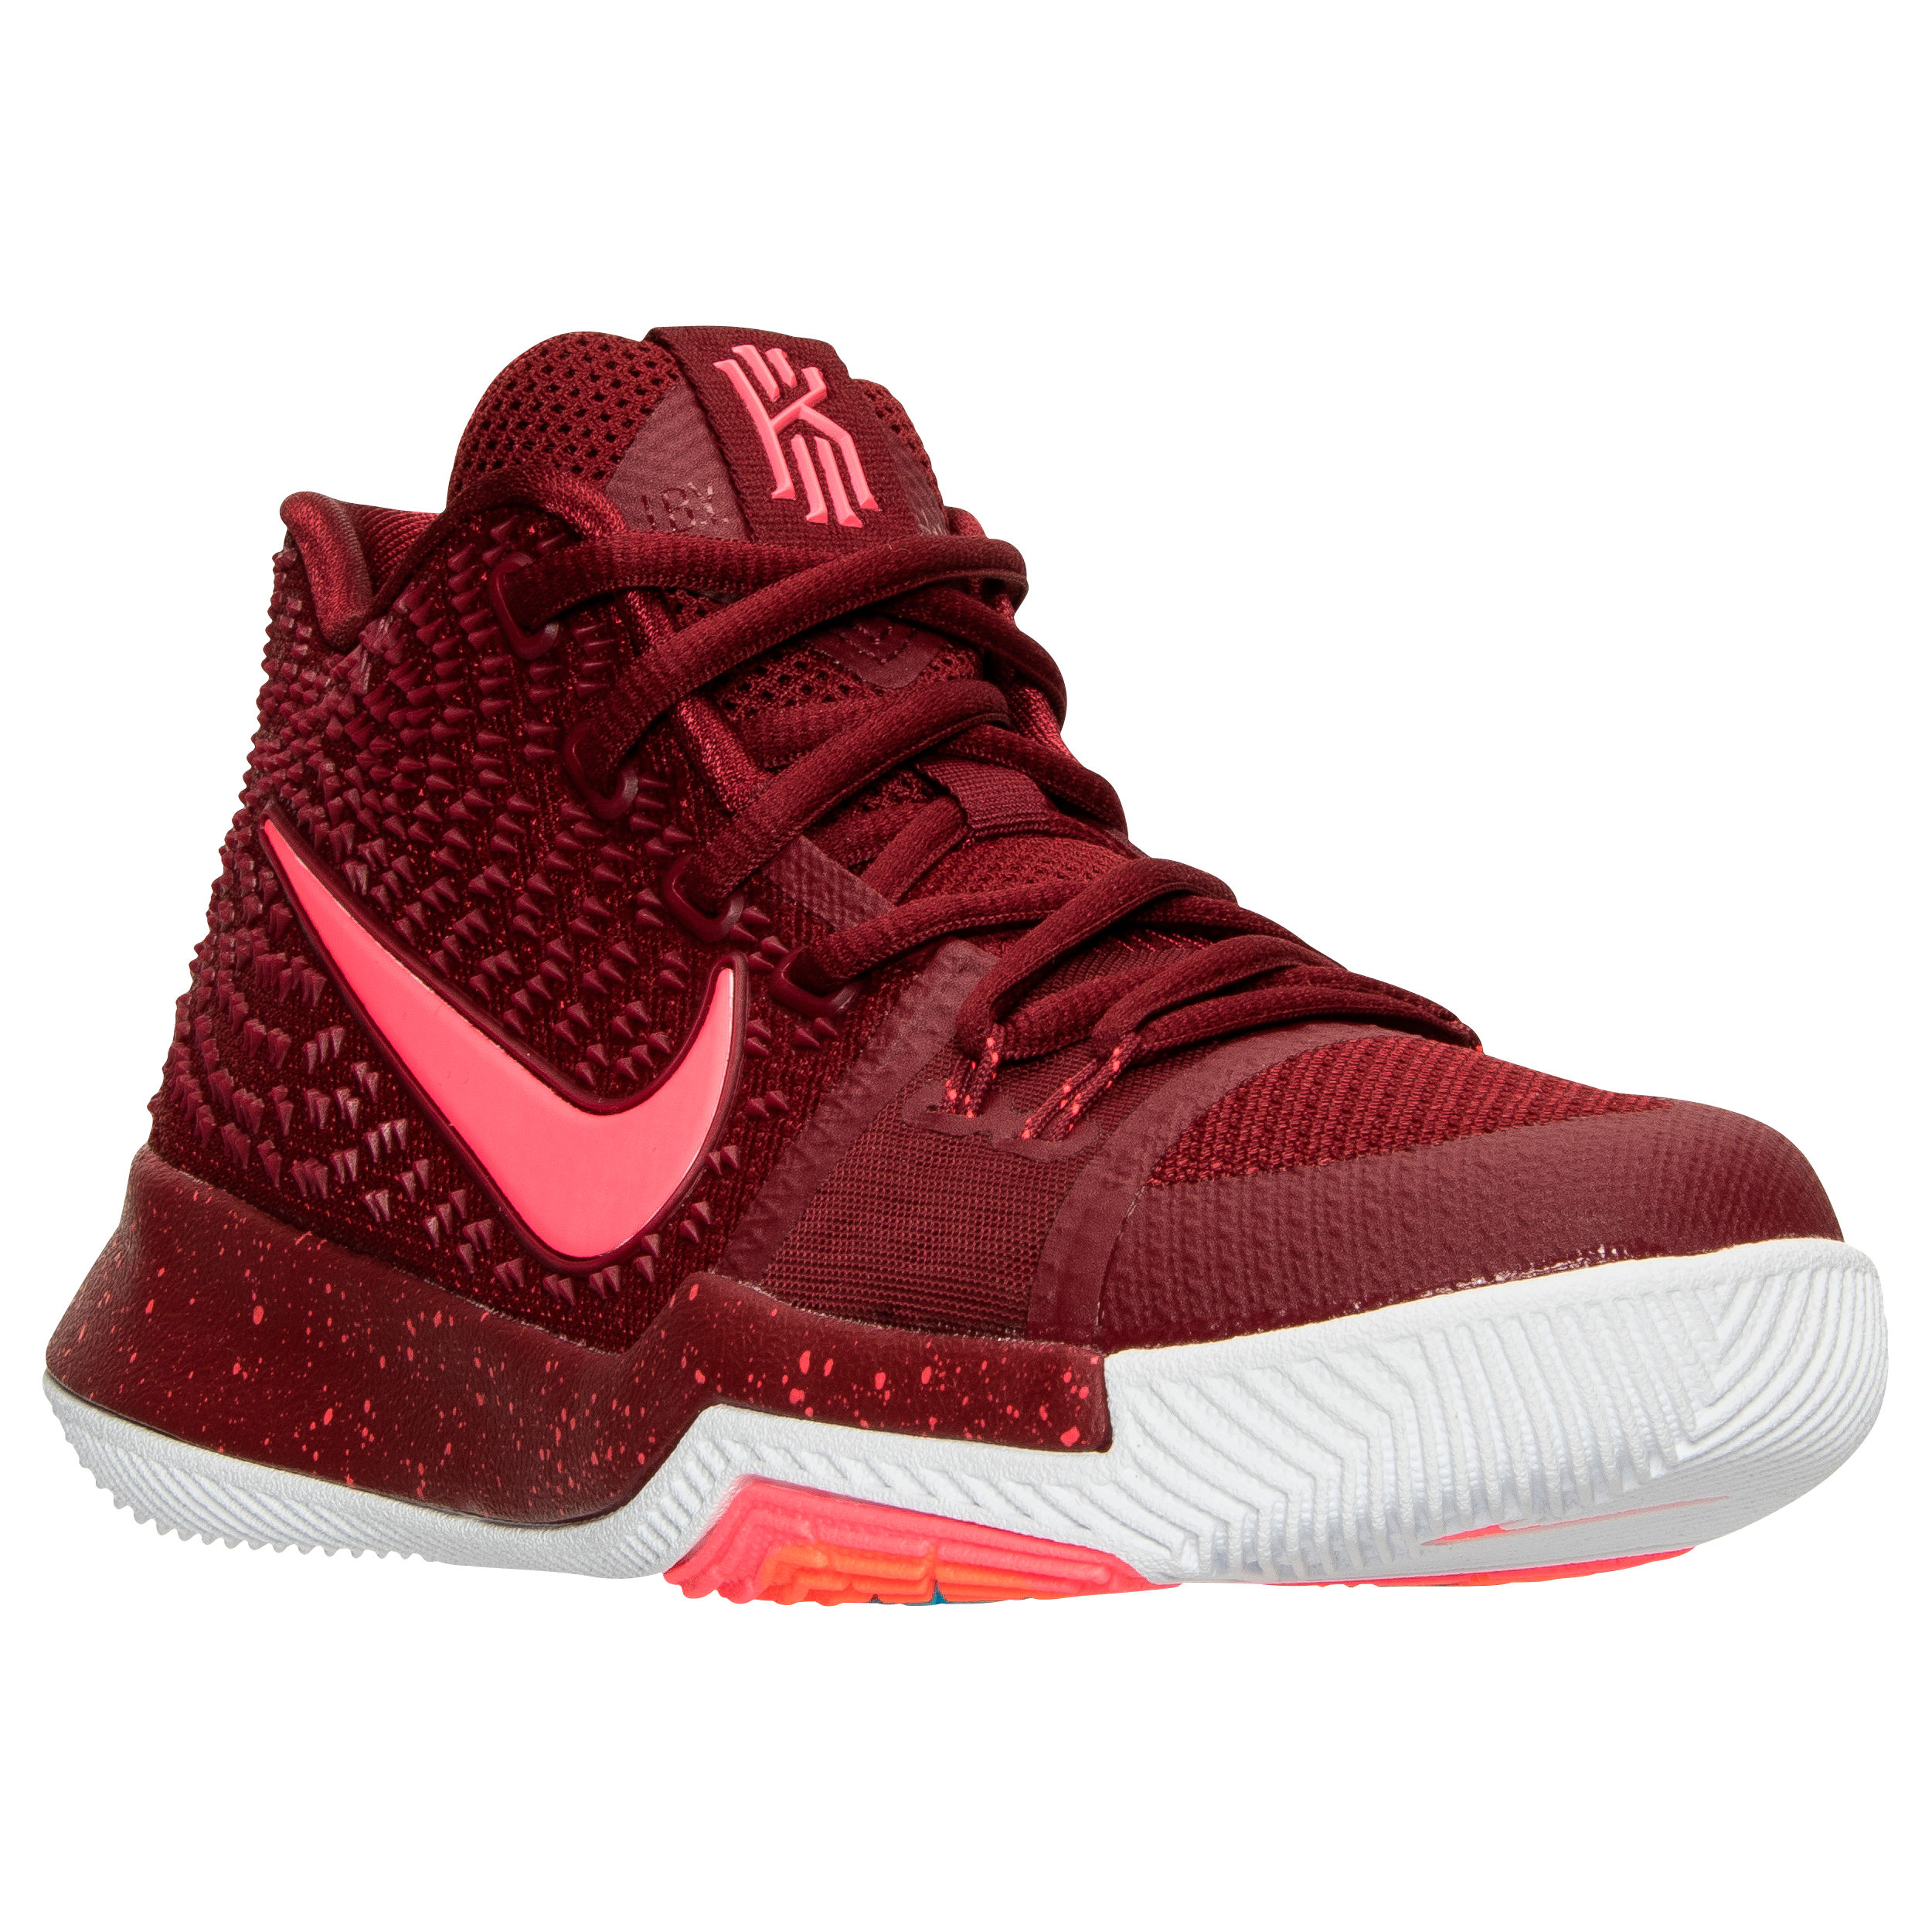 c059d0649adc ... top quality a look at the upcoming team red nike kyrie 3 gs weartester  . c4c96